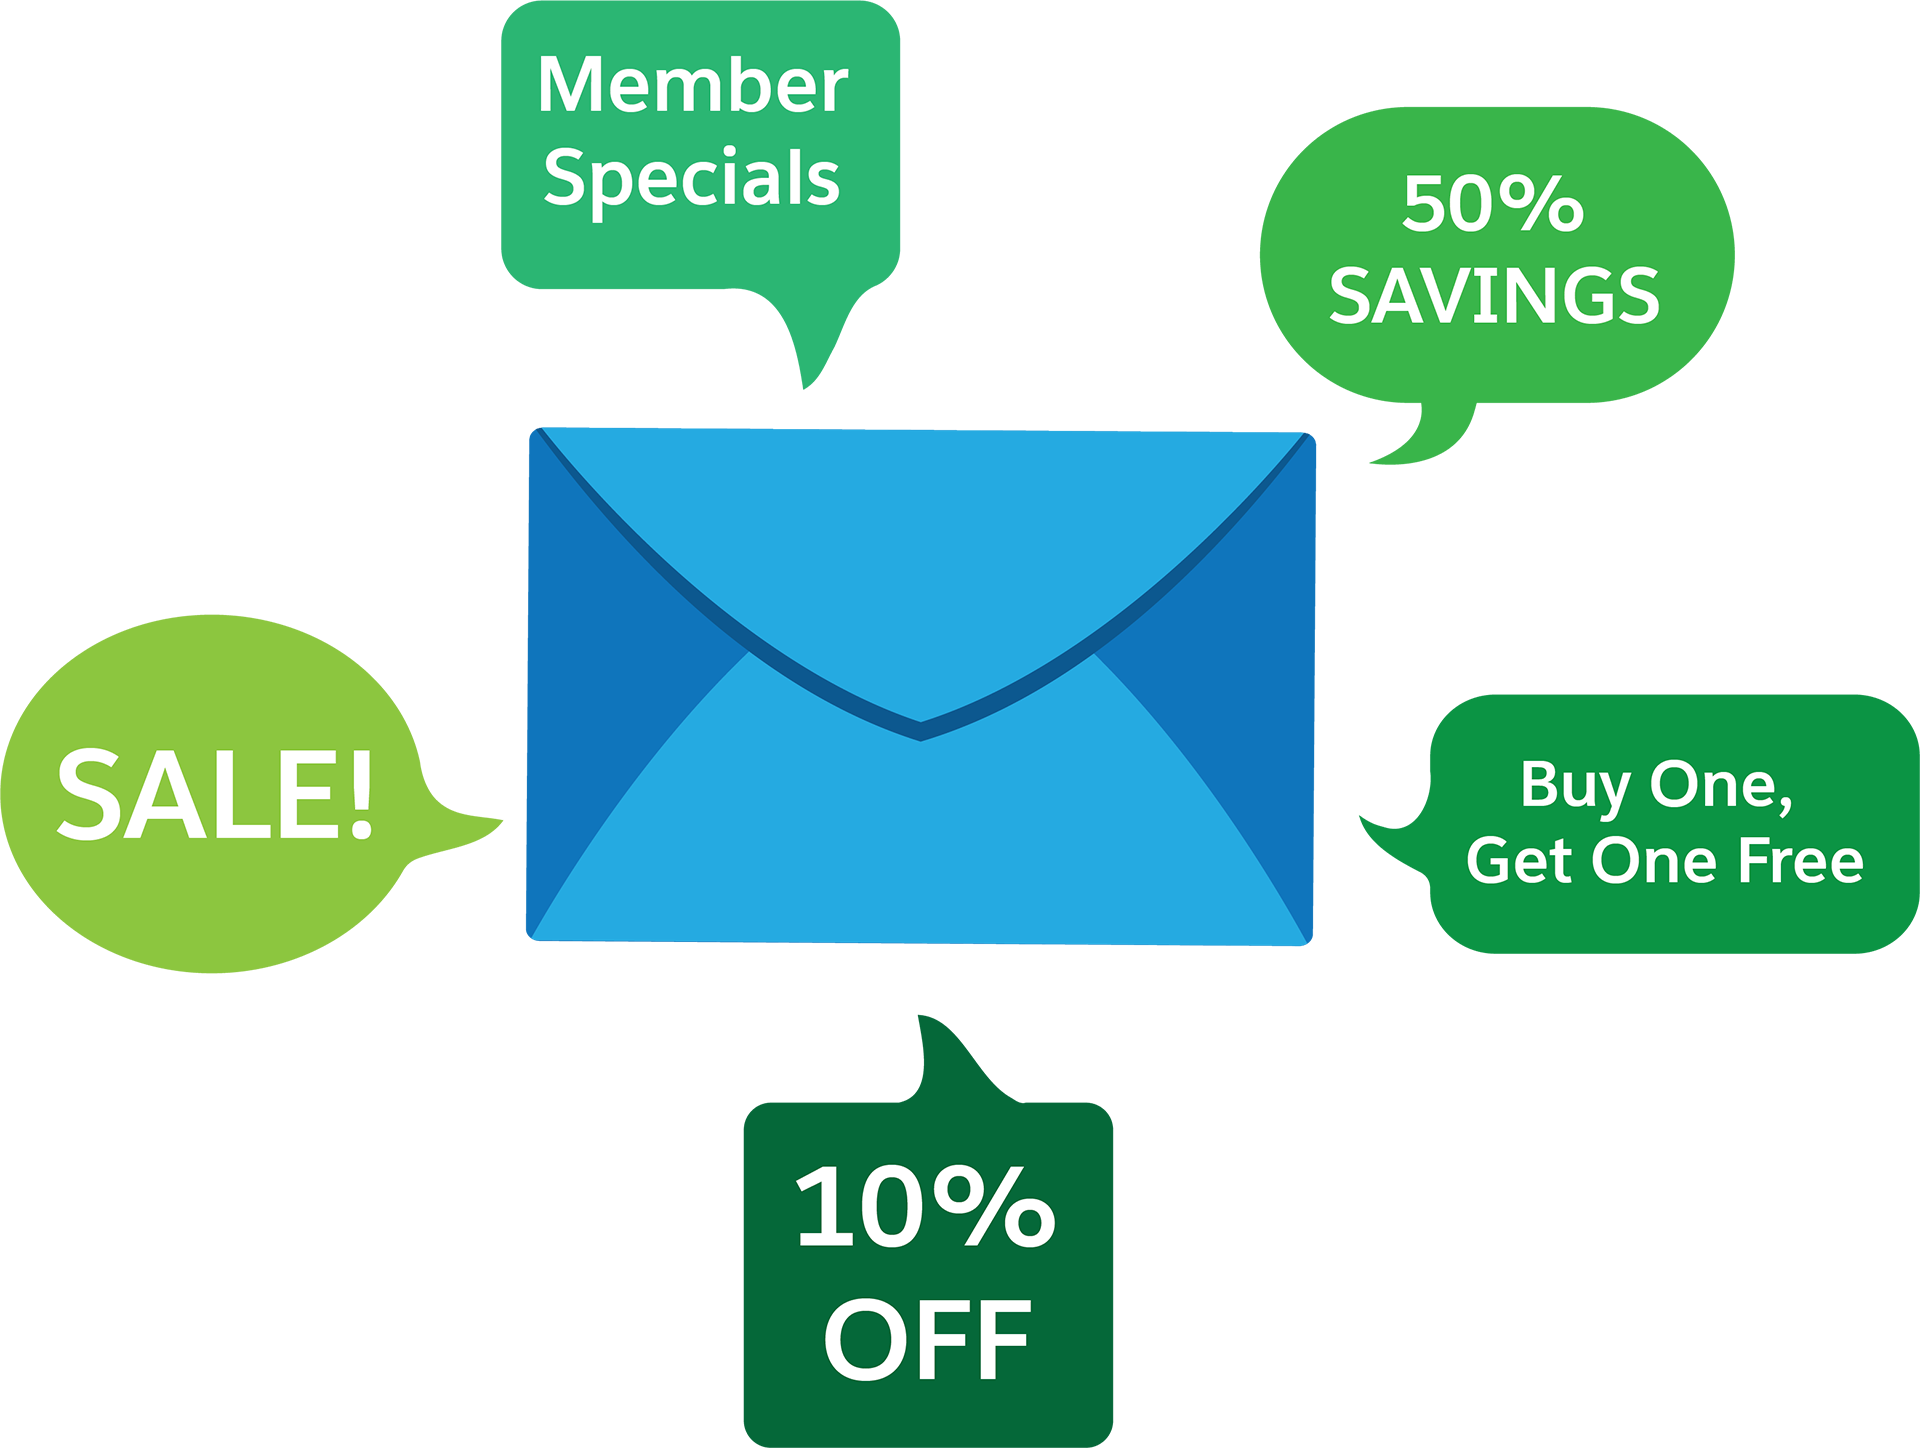 Talking Email with incentives (Buy One, Get One Free; 50% SAVINGS; SALE!; $10 OFF; Member Specials).